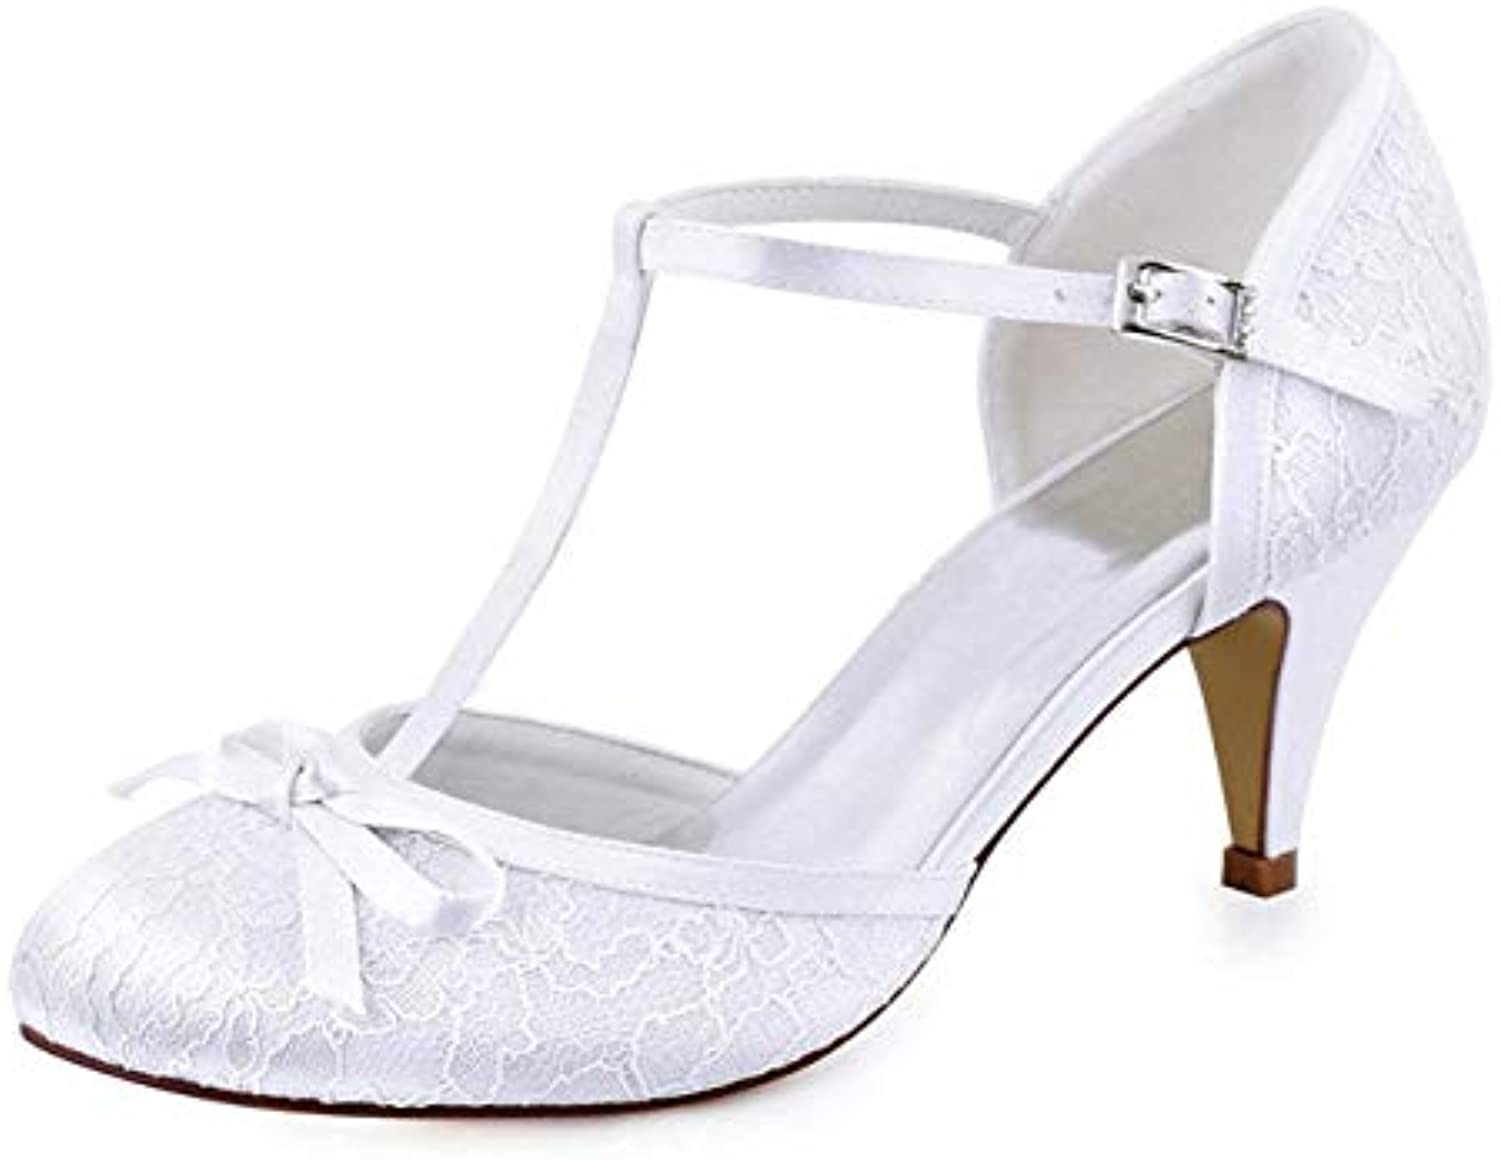 ZHRUI Ladies Knot Retro Lovely bianca Lace Wedding T-Strap T-Strap T-Strap scarpe UK 6 (Coloreee   -, Dimensione   -) | Aspetto estetico